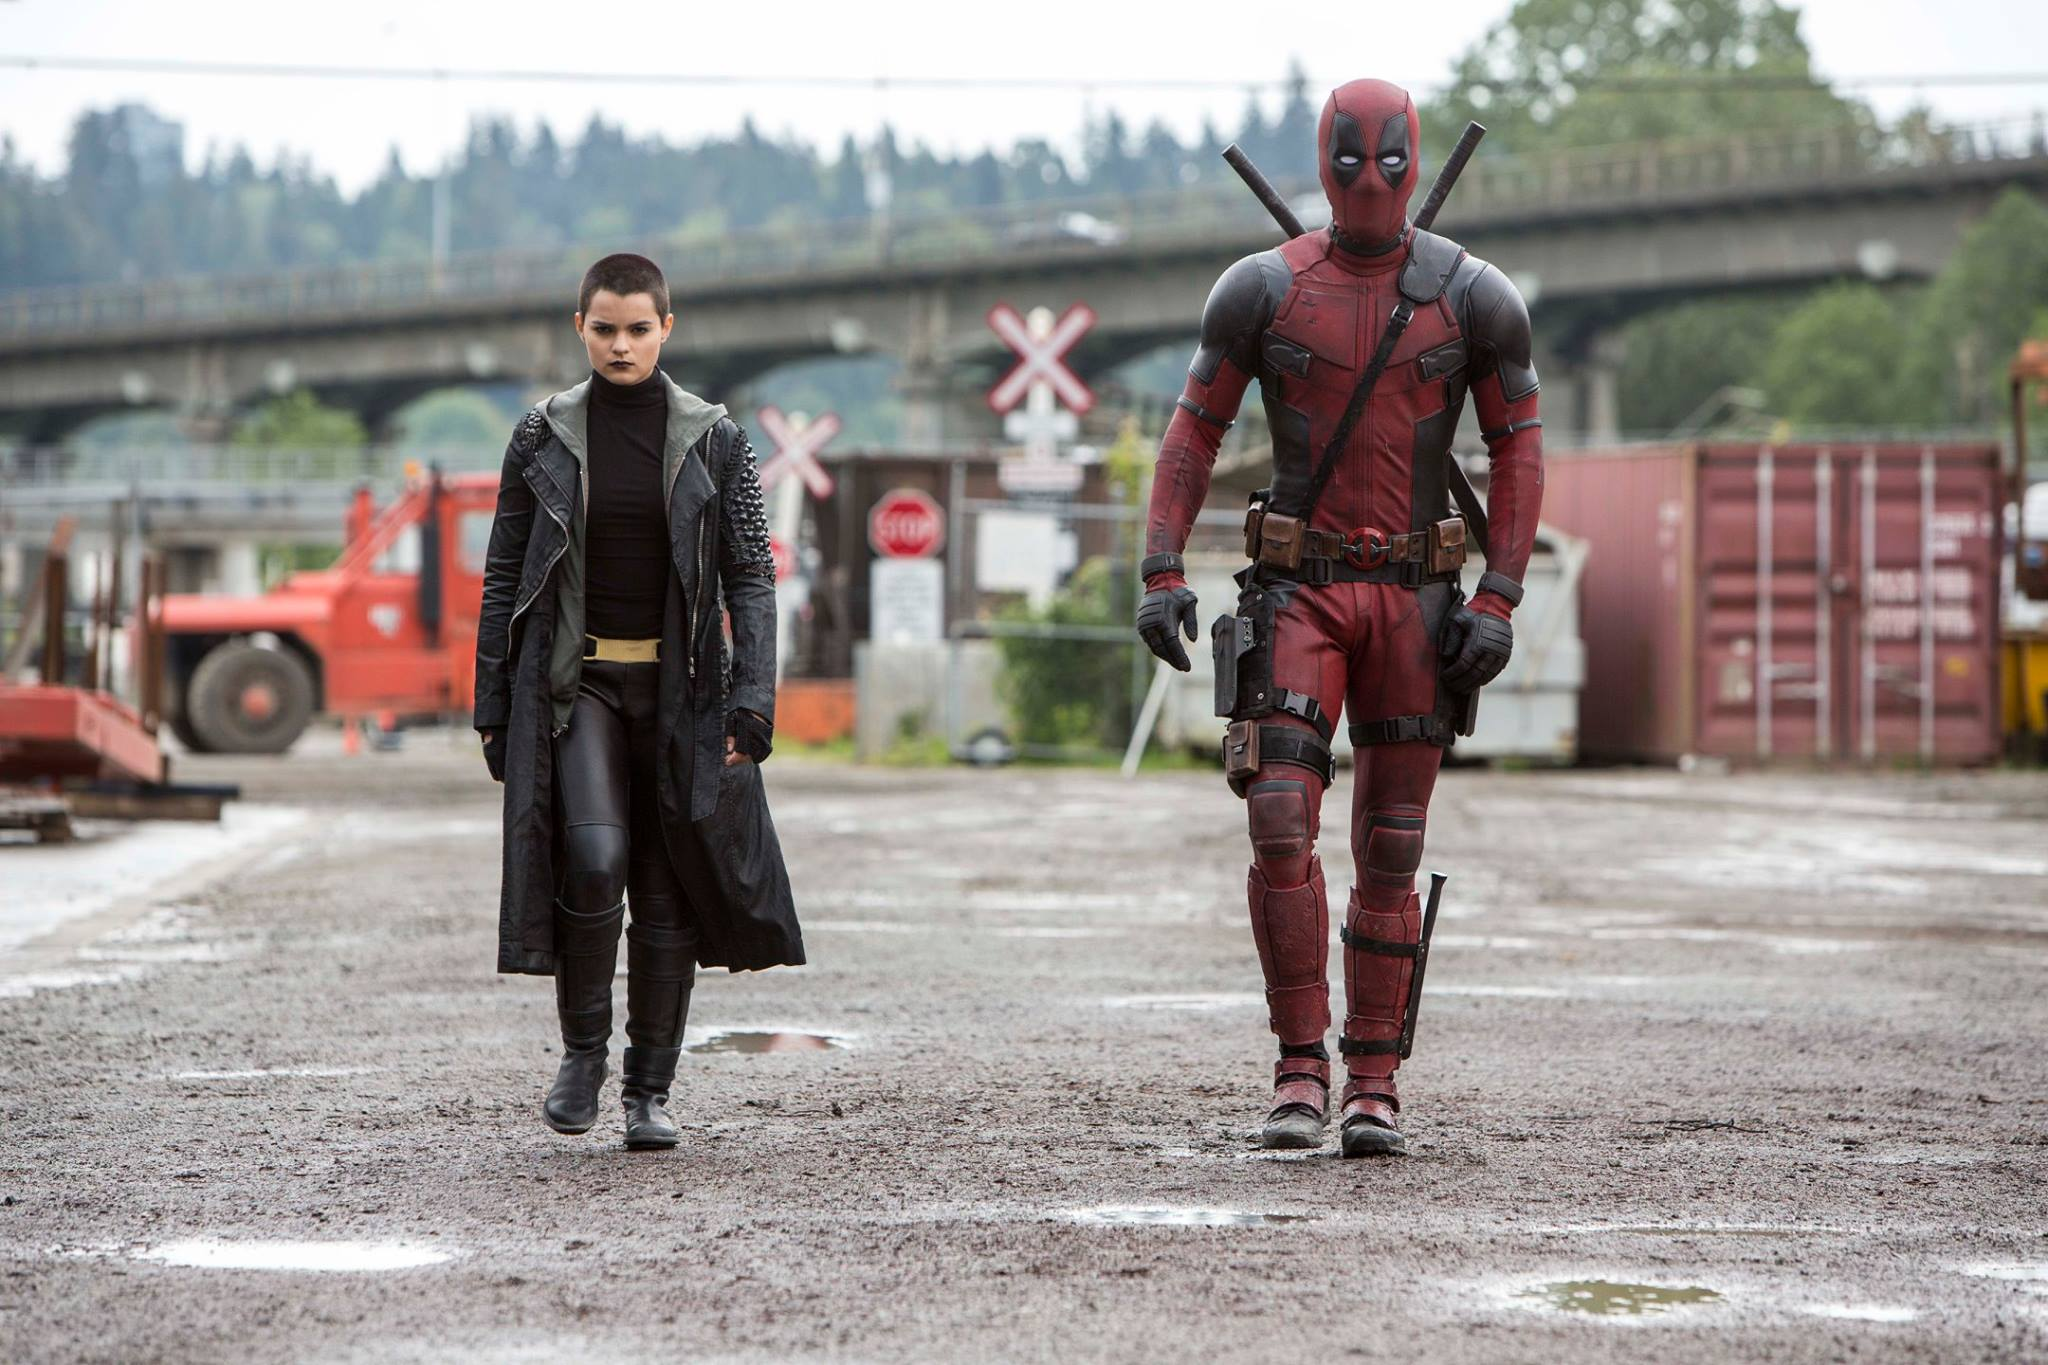 'Deadpool' Movie review by Lauren Steffany - LATF USA